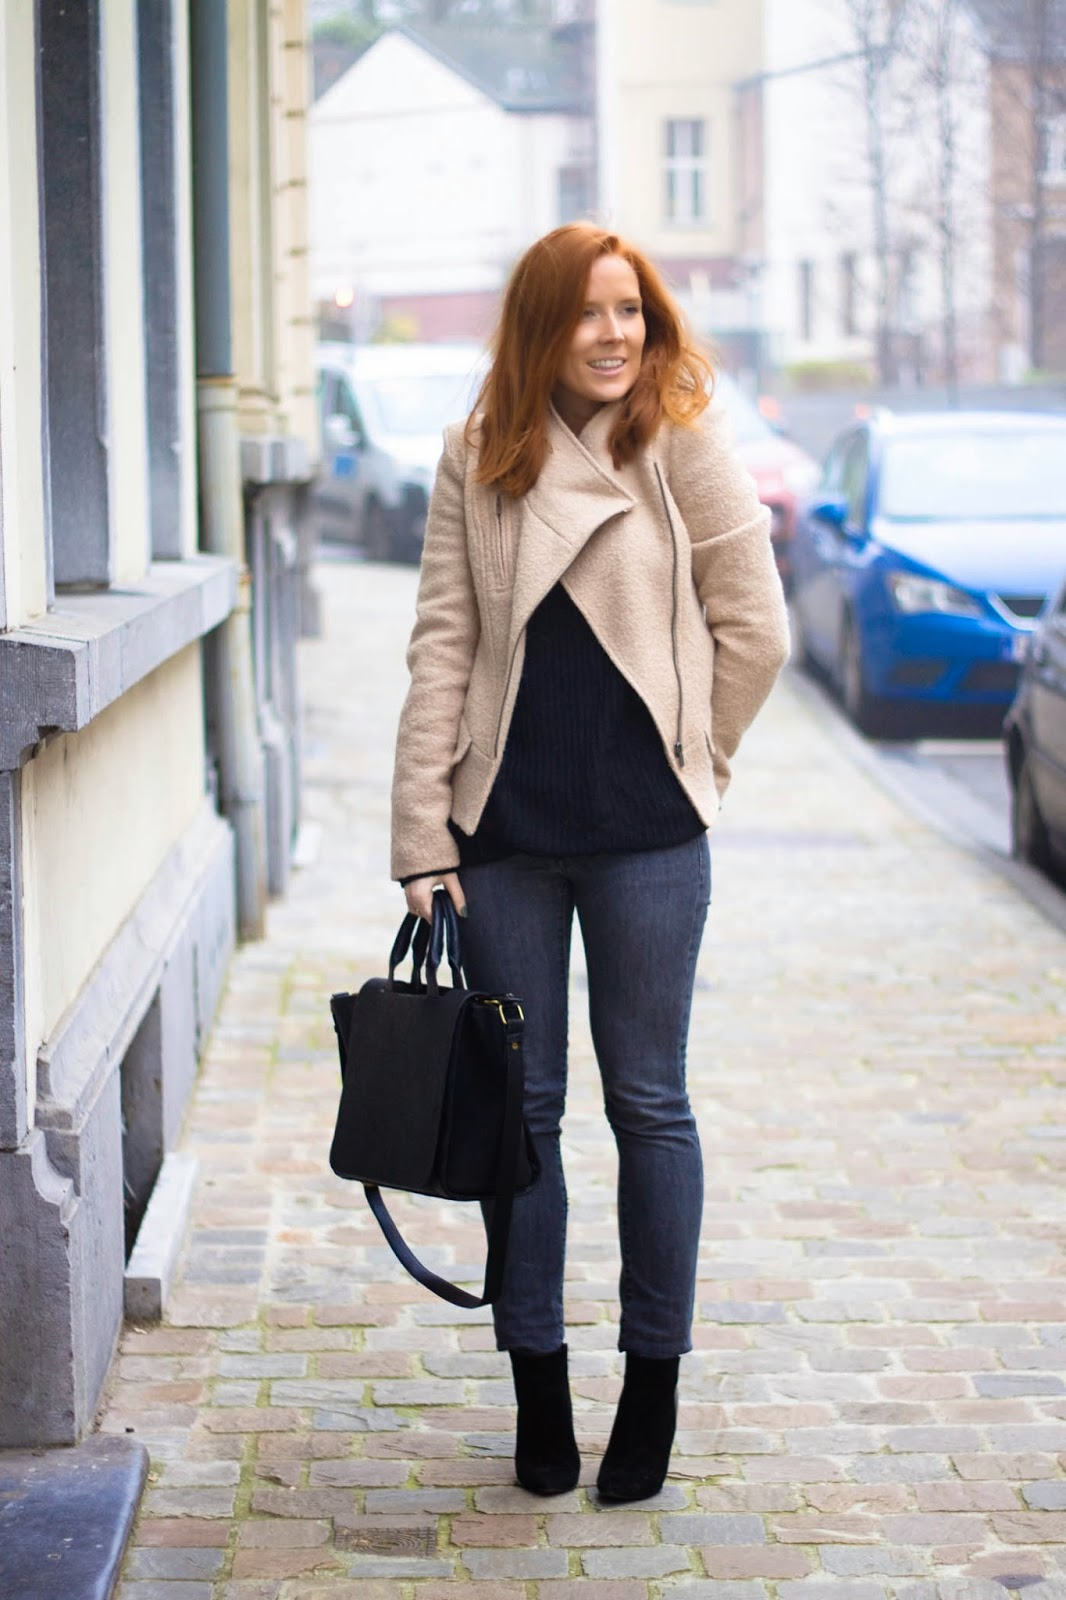 Women's black clothing inspiration for